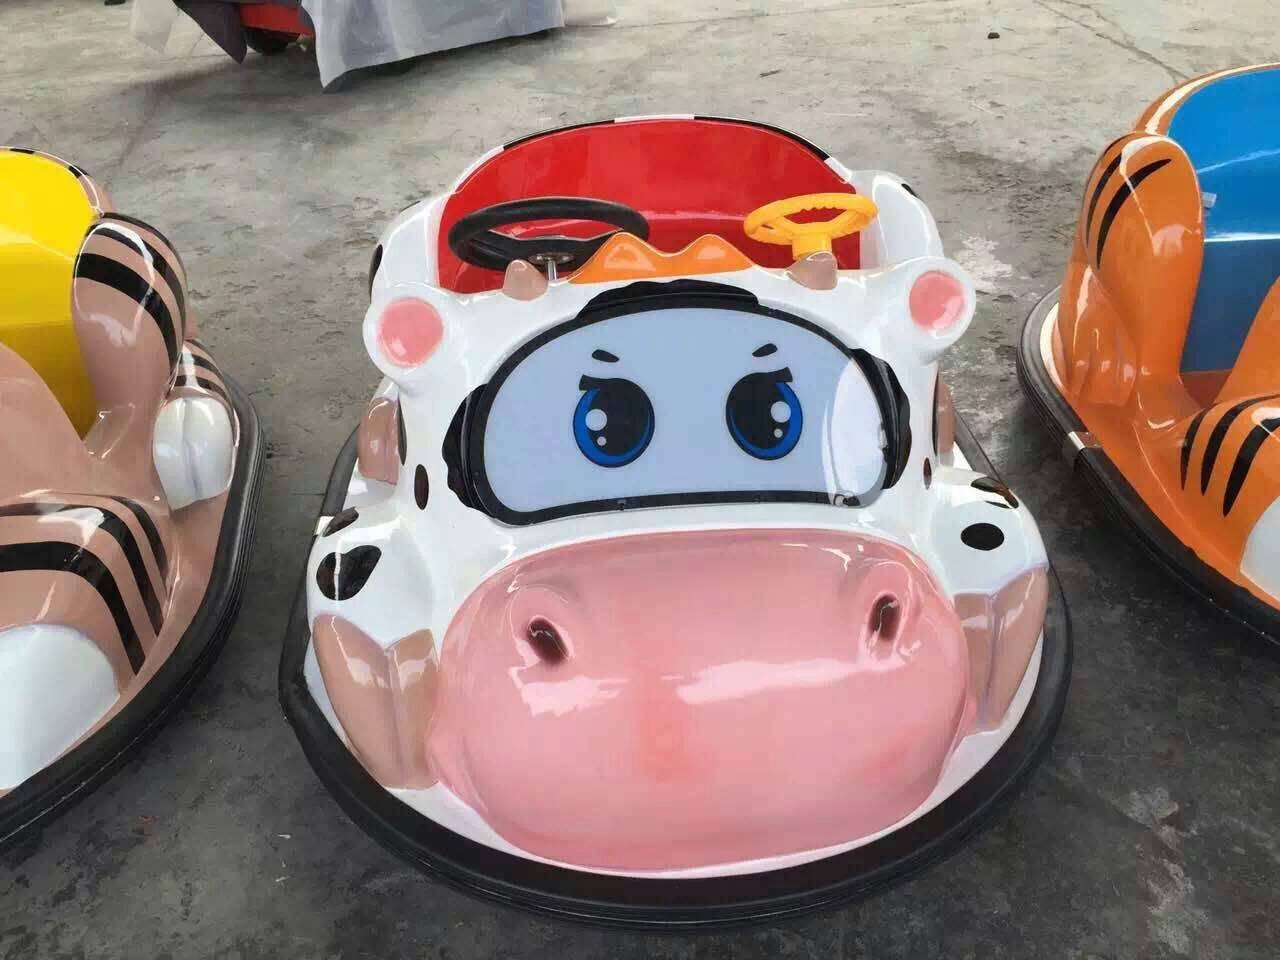 Coin Operated Bumper car for two people